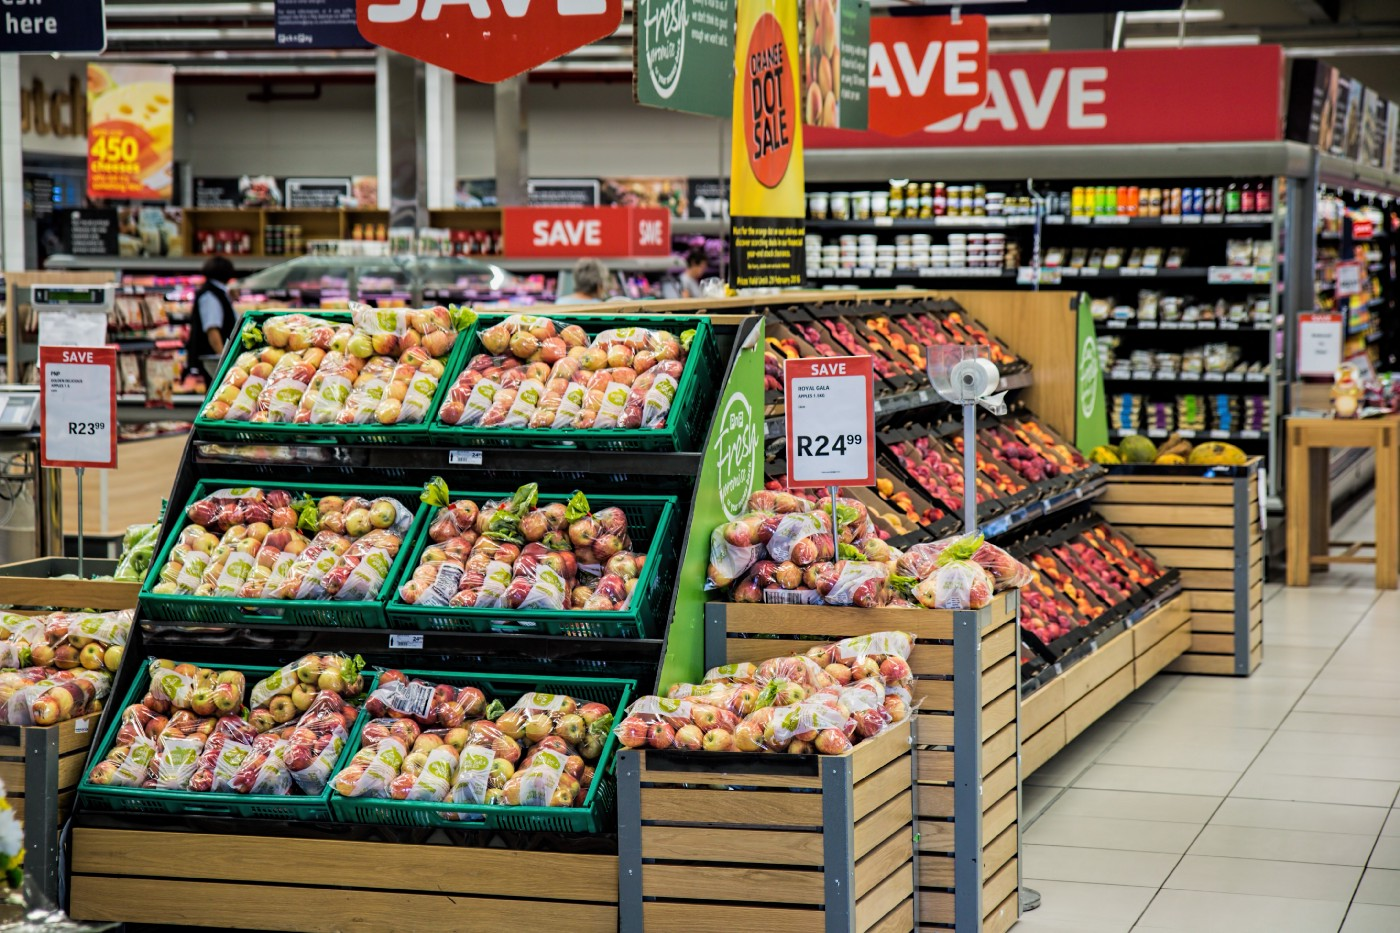 Grocery store produce, being shown on sale, with price savings